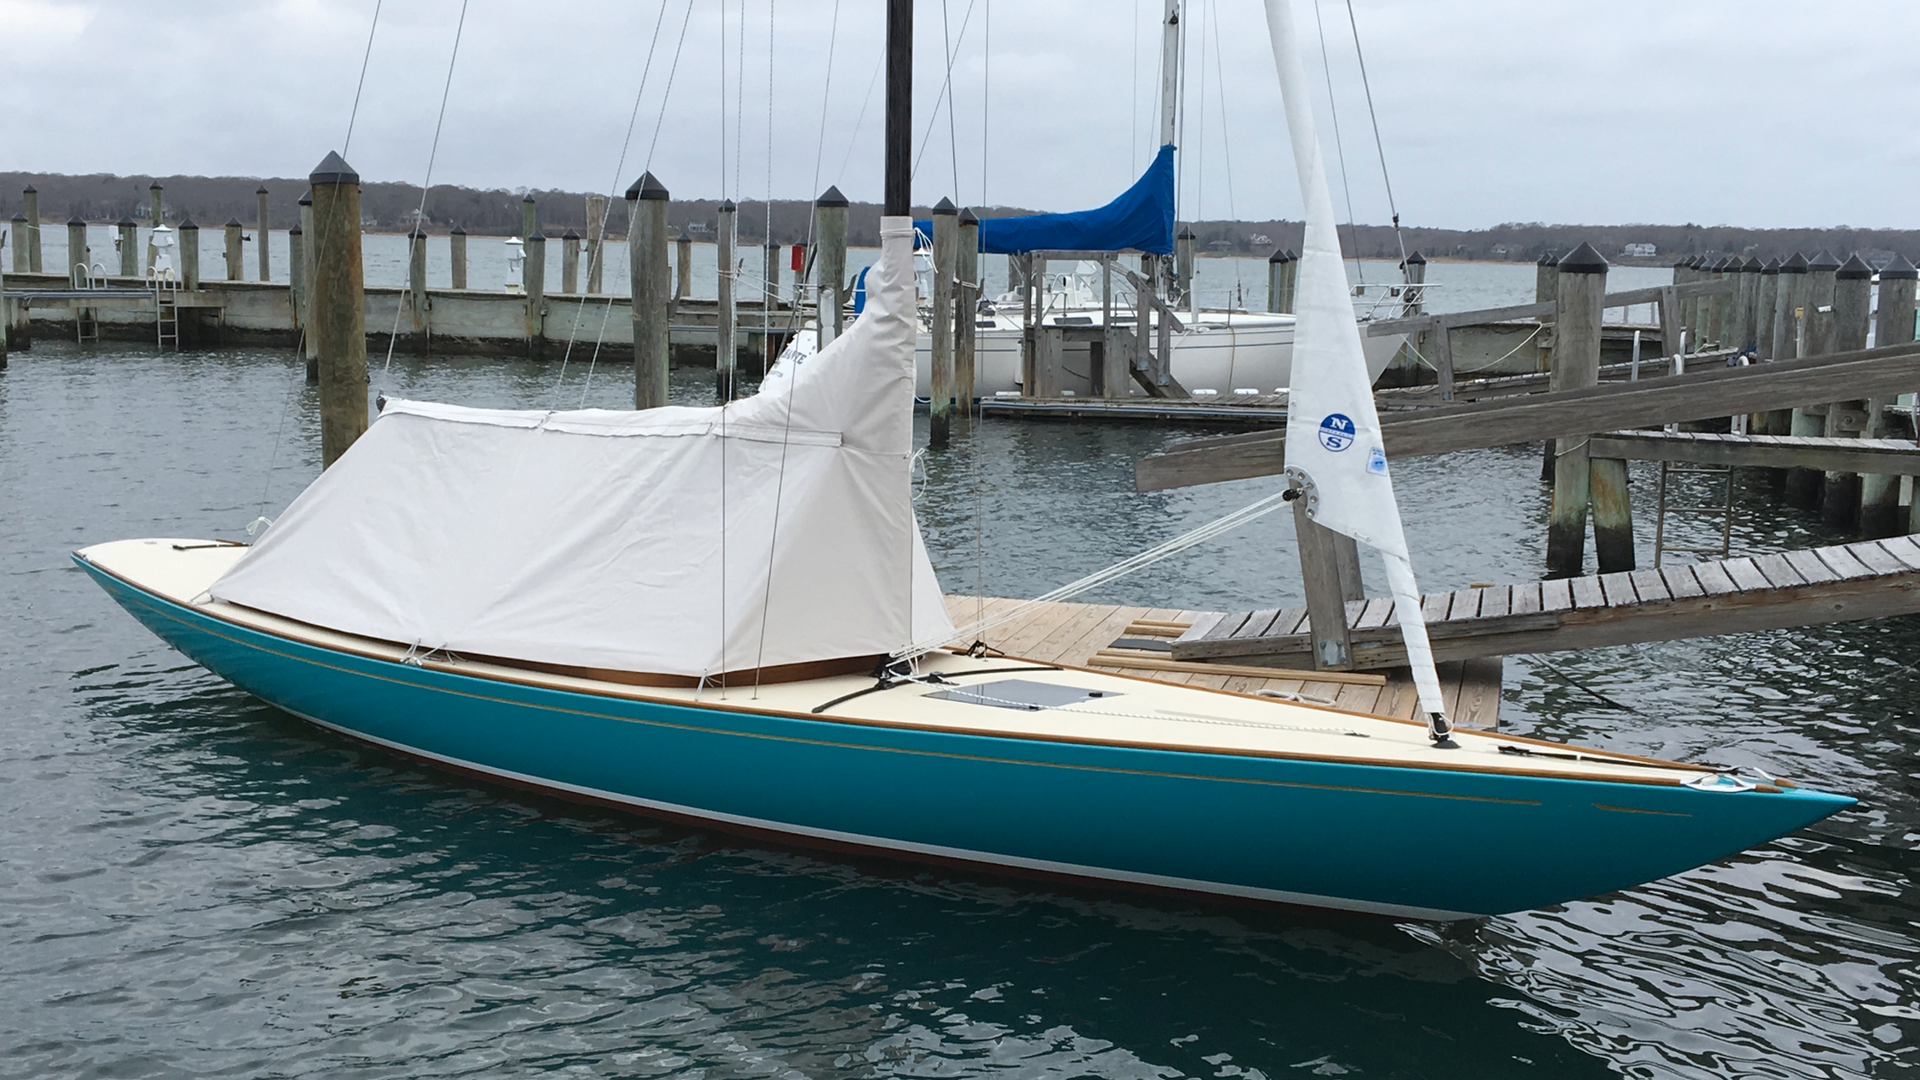 """Sunbrella """"natural"""" cover with Island Turquoise Awlgrip hull"""